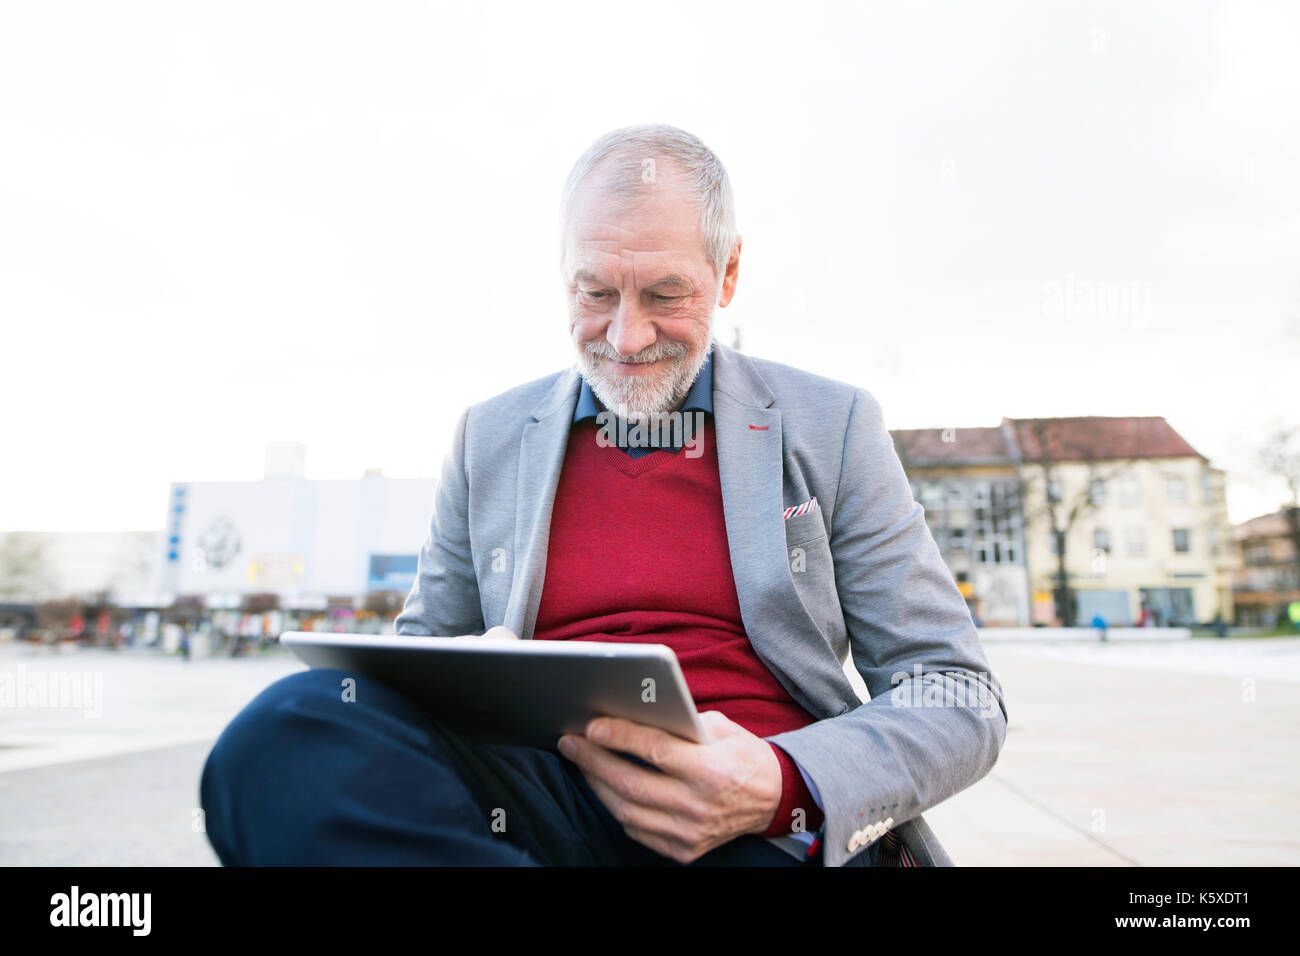 Senior man in town sitting on bench, working on tablet - Stock Image